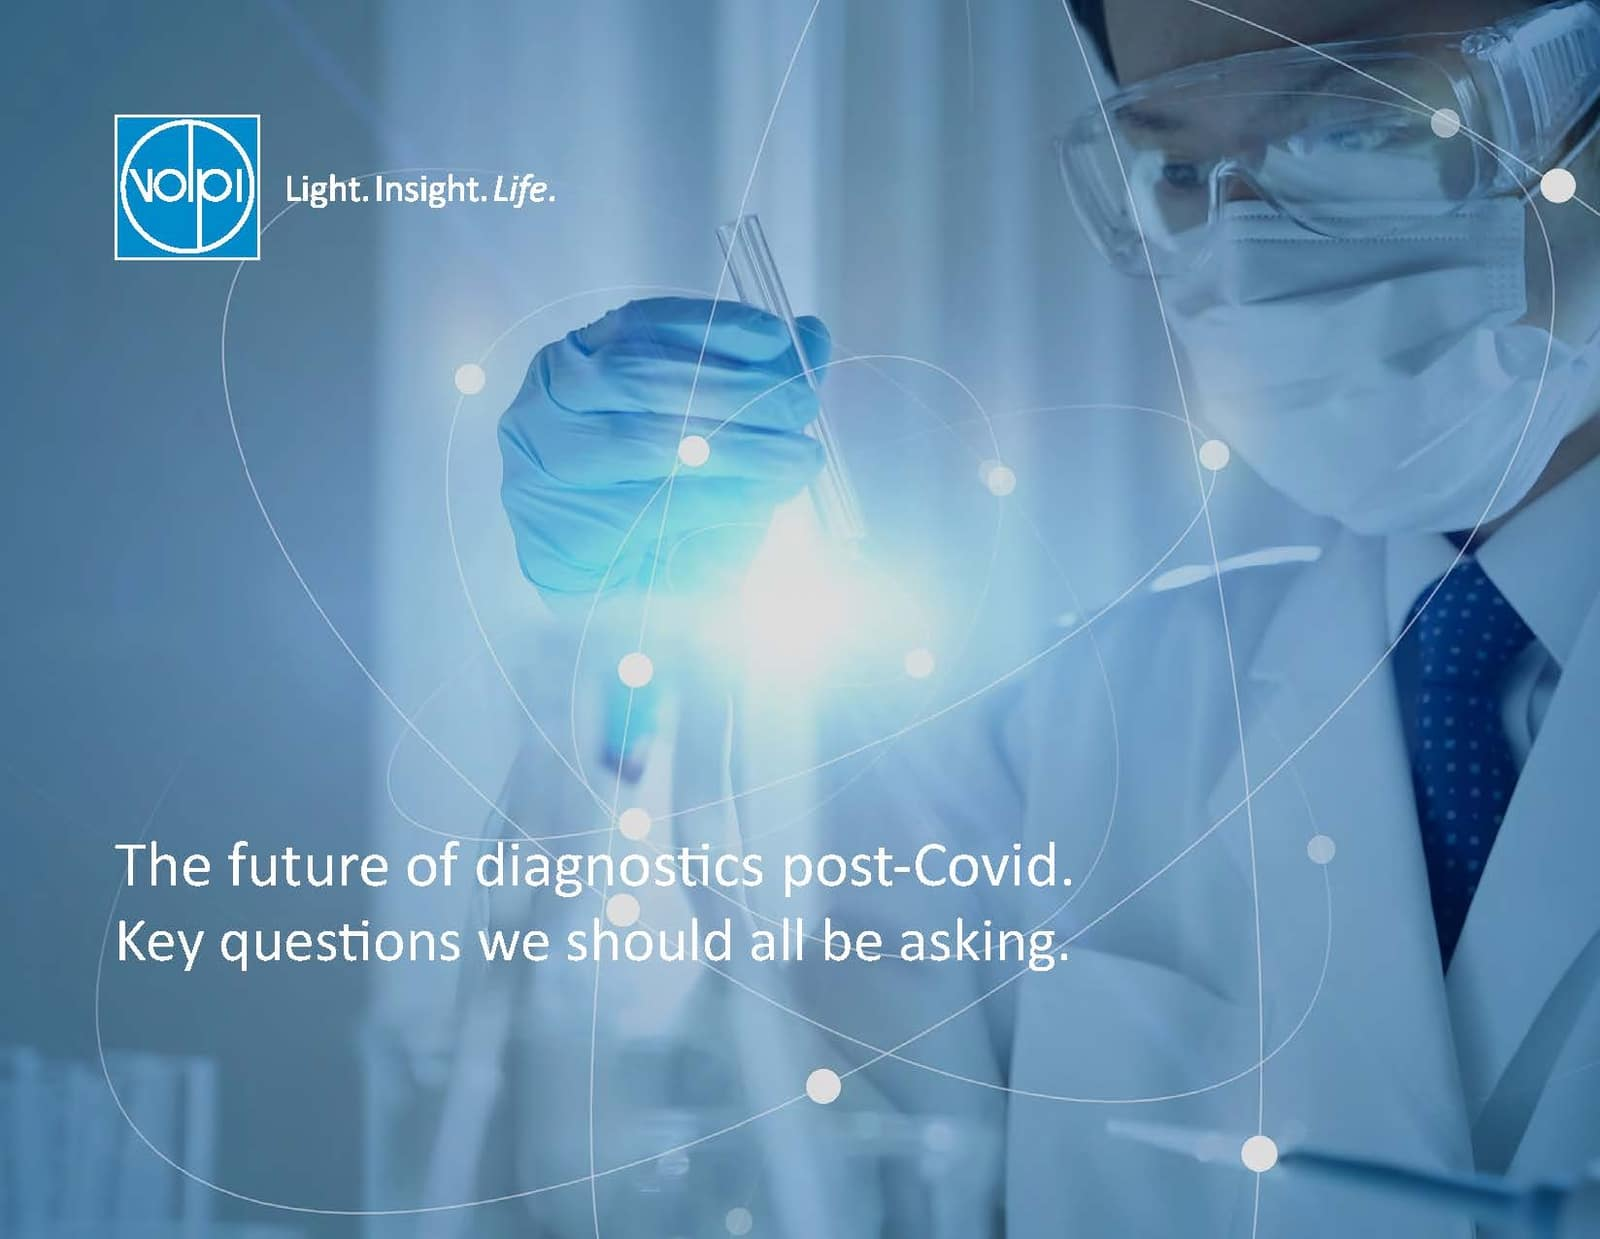 What is the future of diagnostics post-Covid?